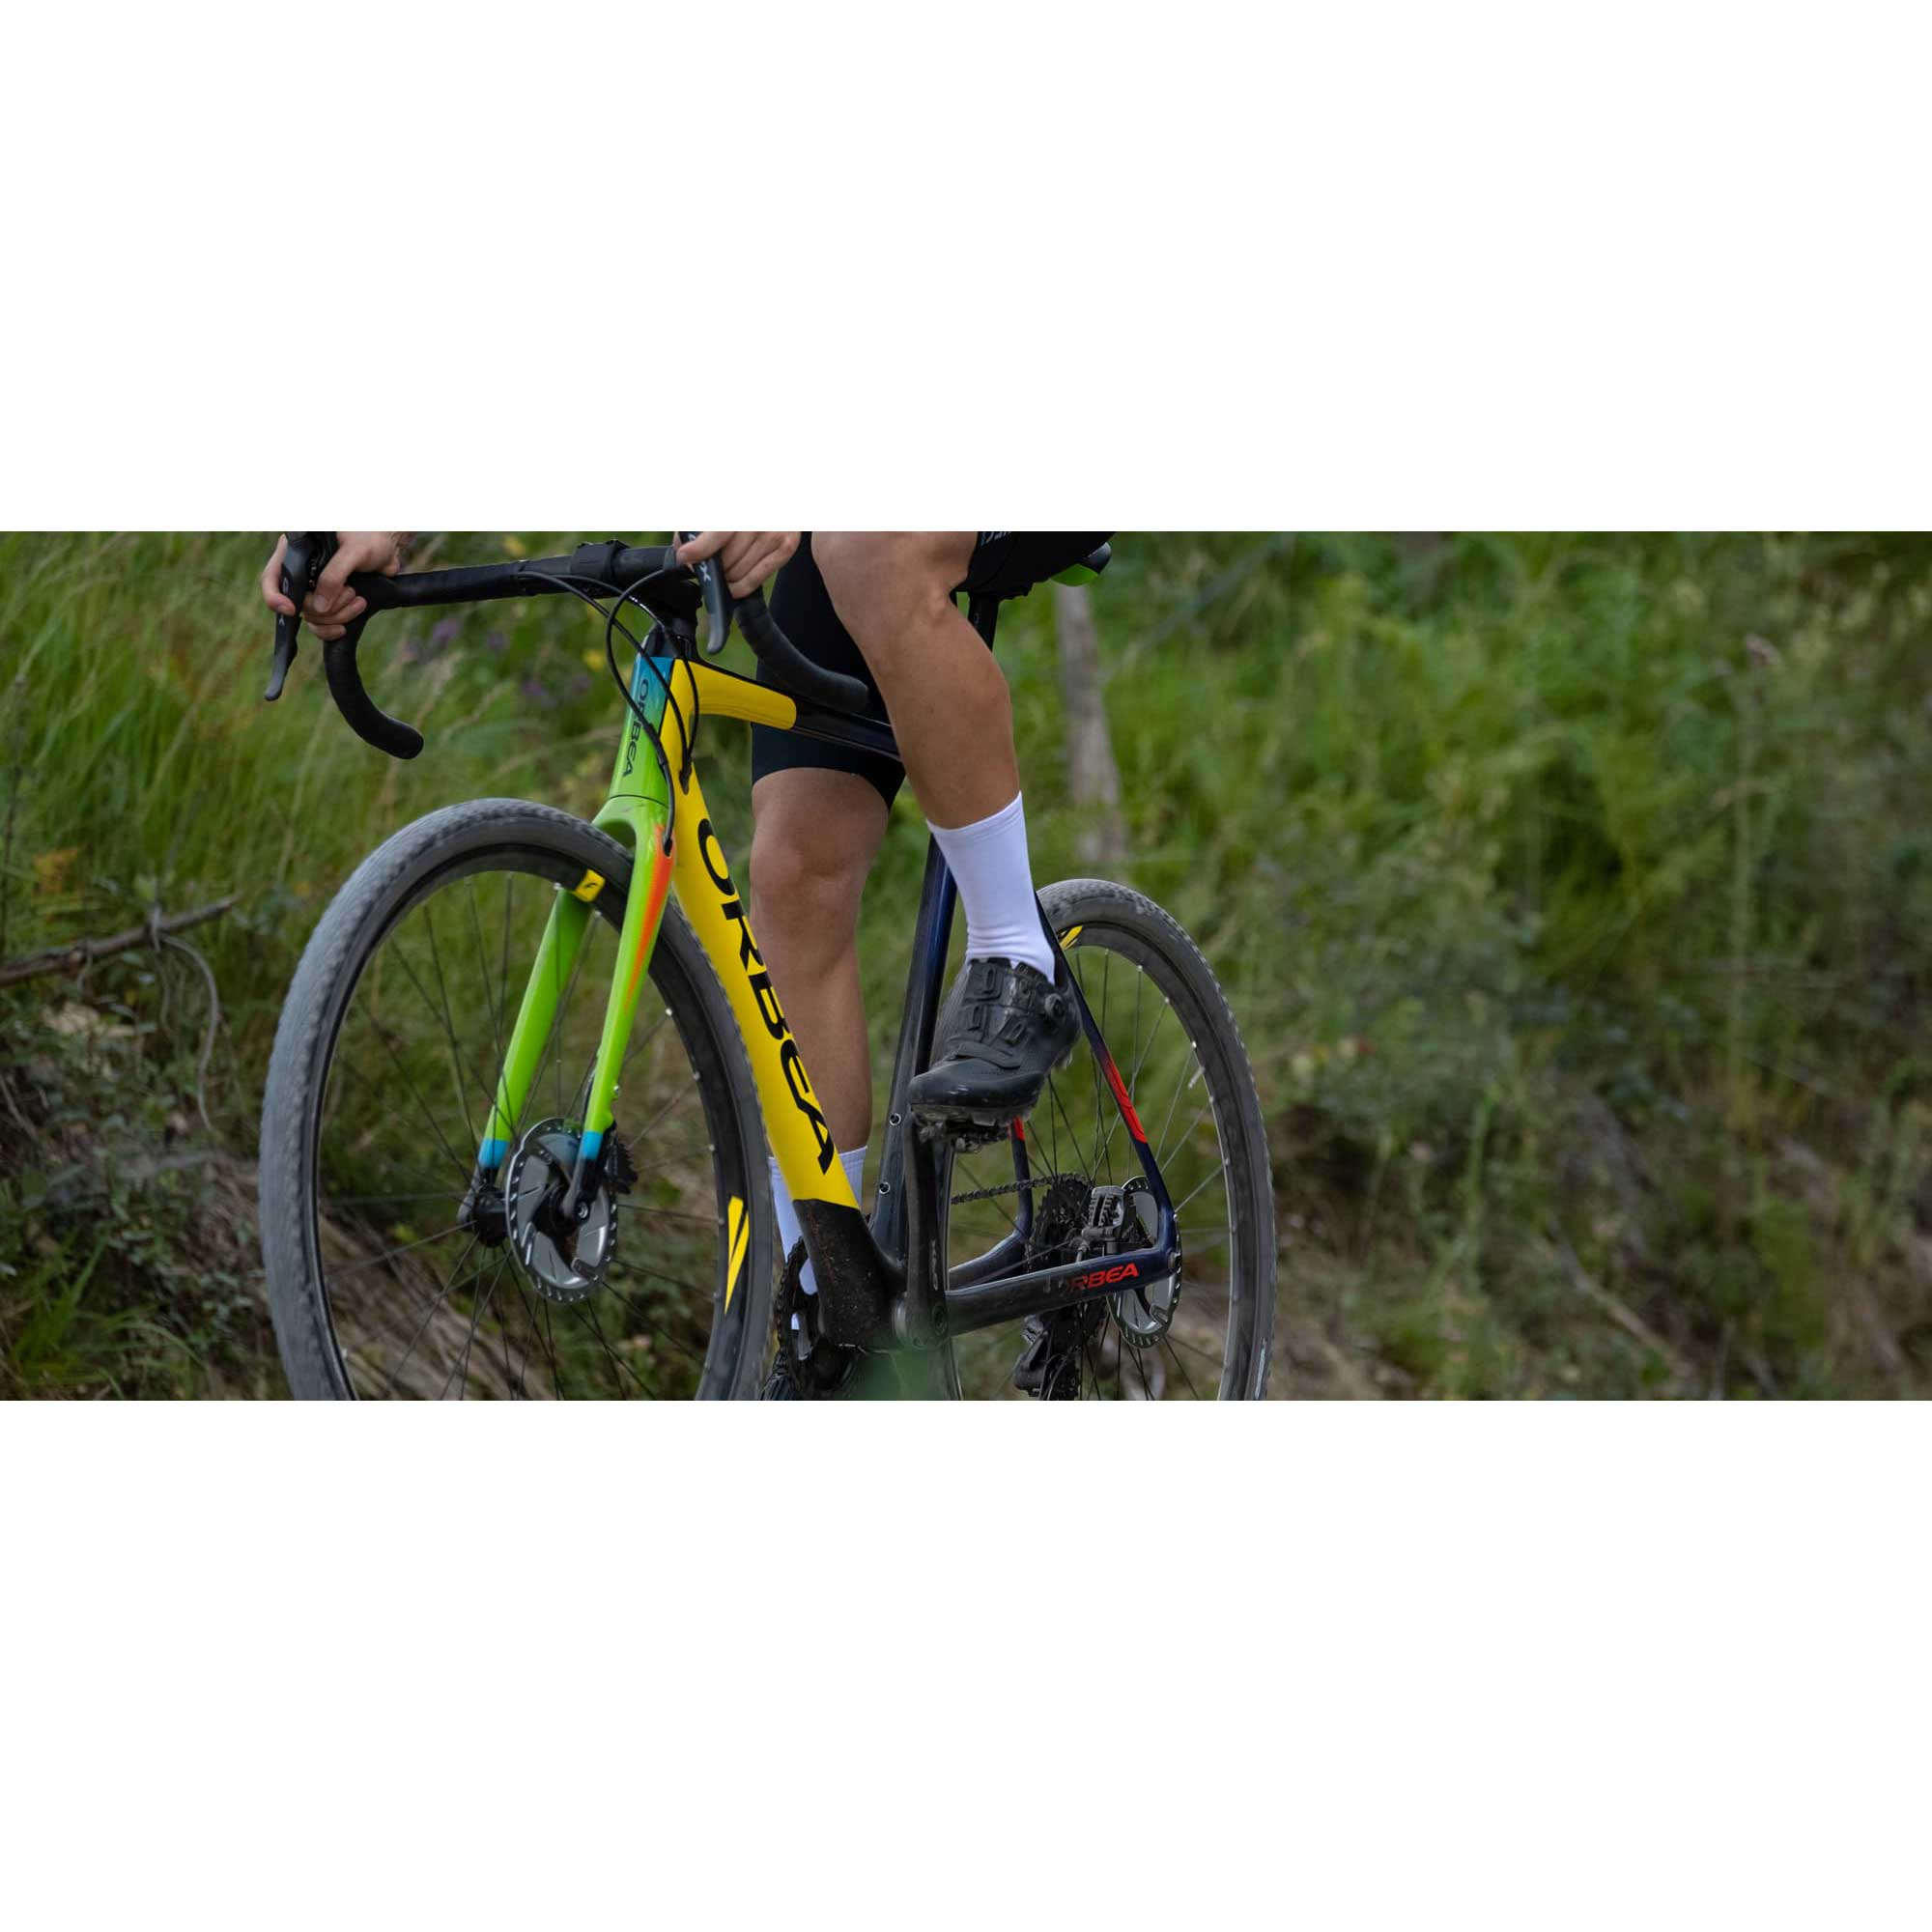 Orbea Terra M20 1x Gravel Bike